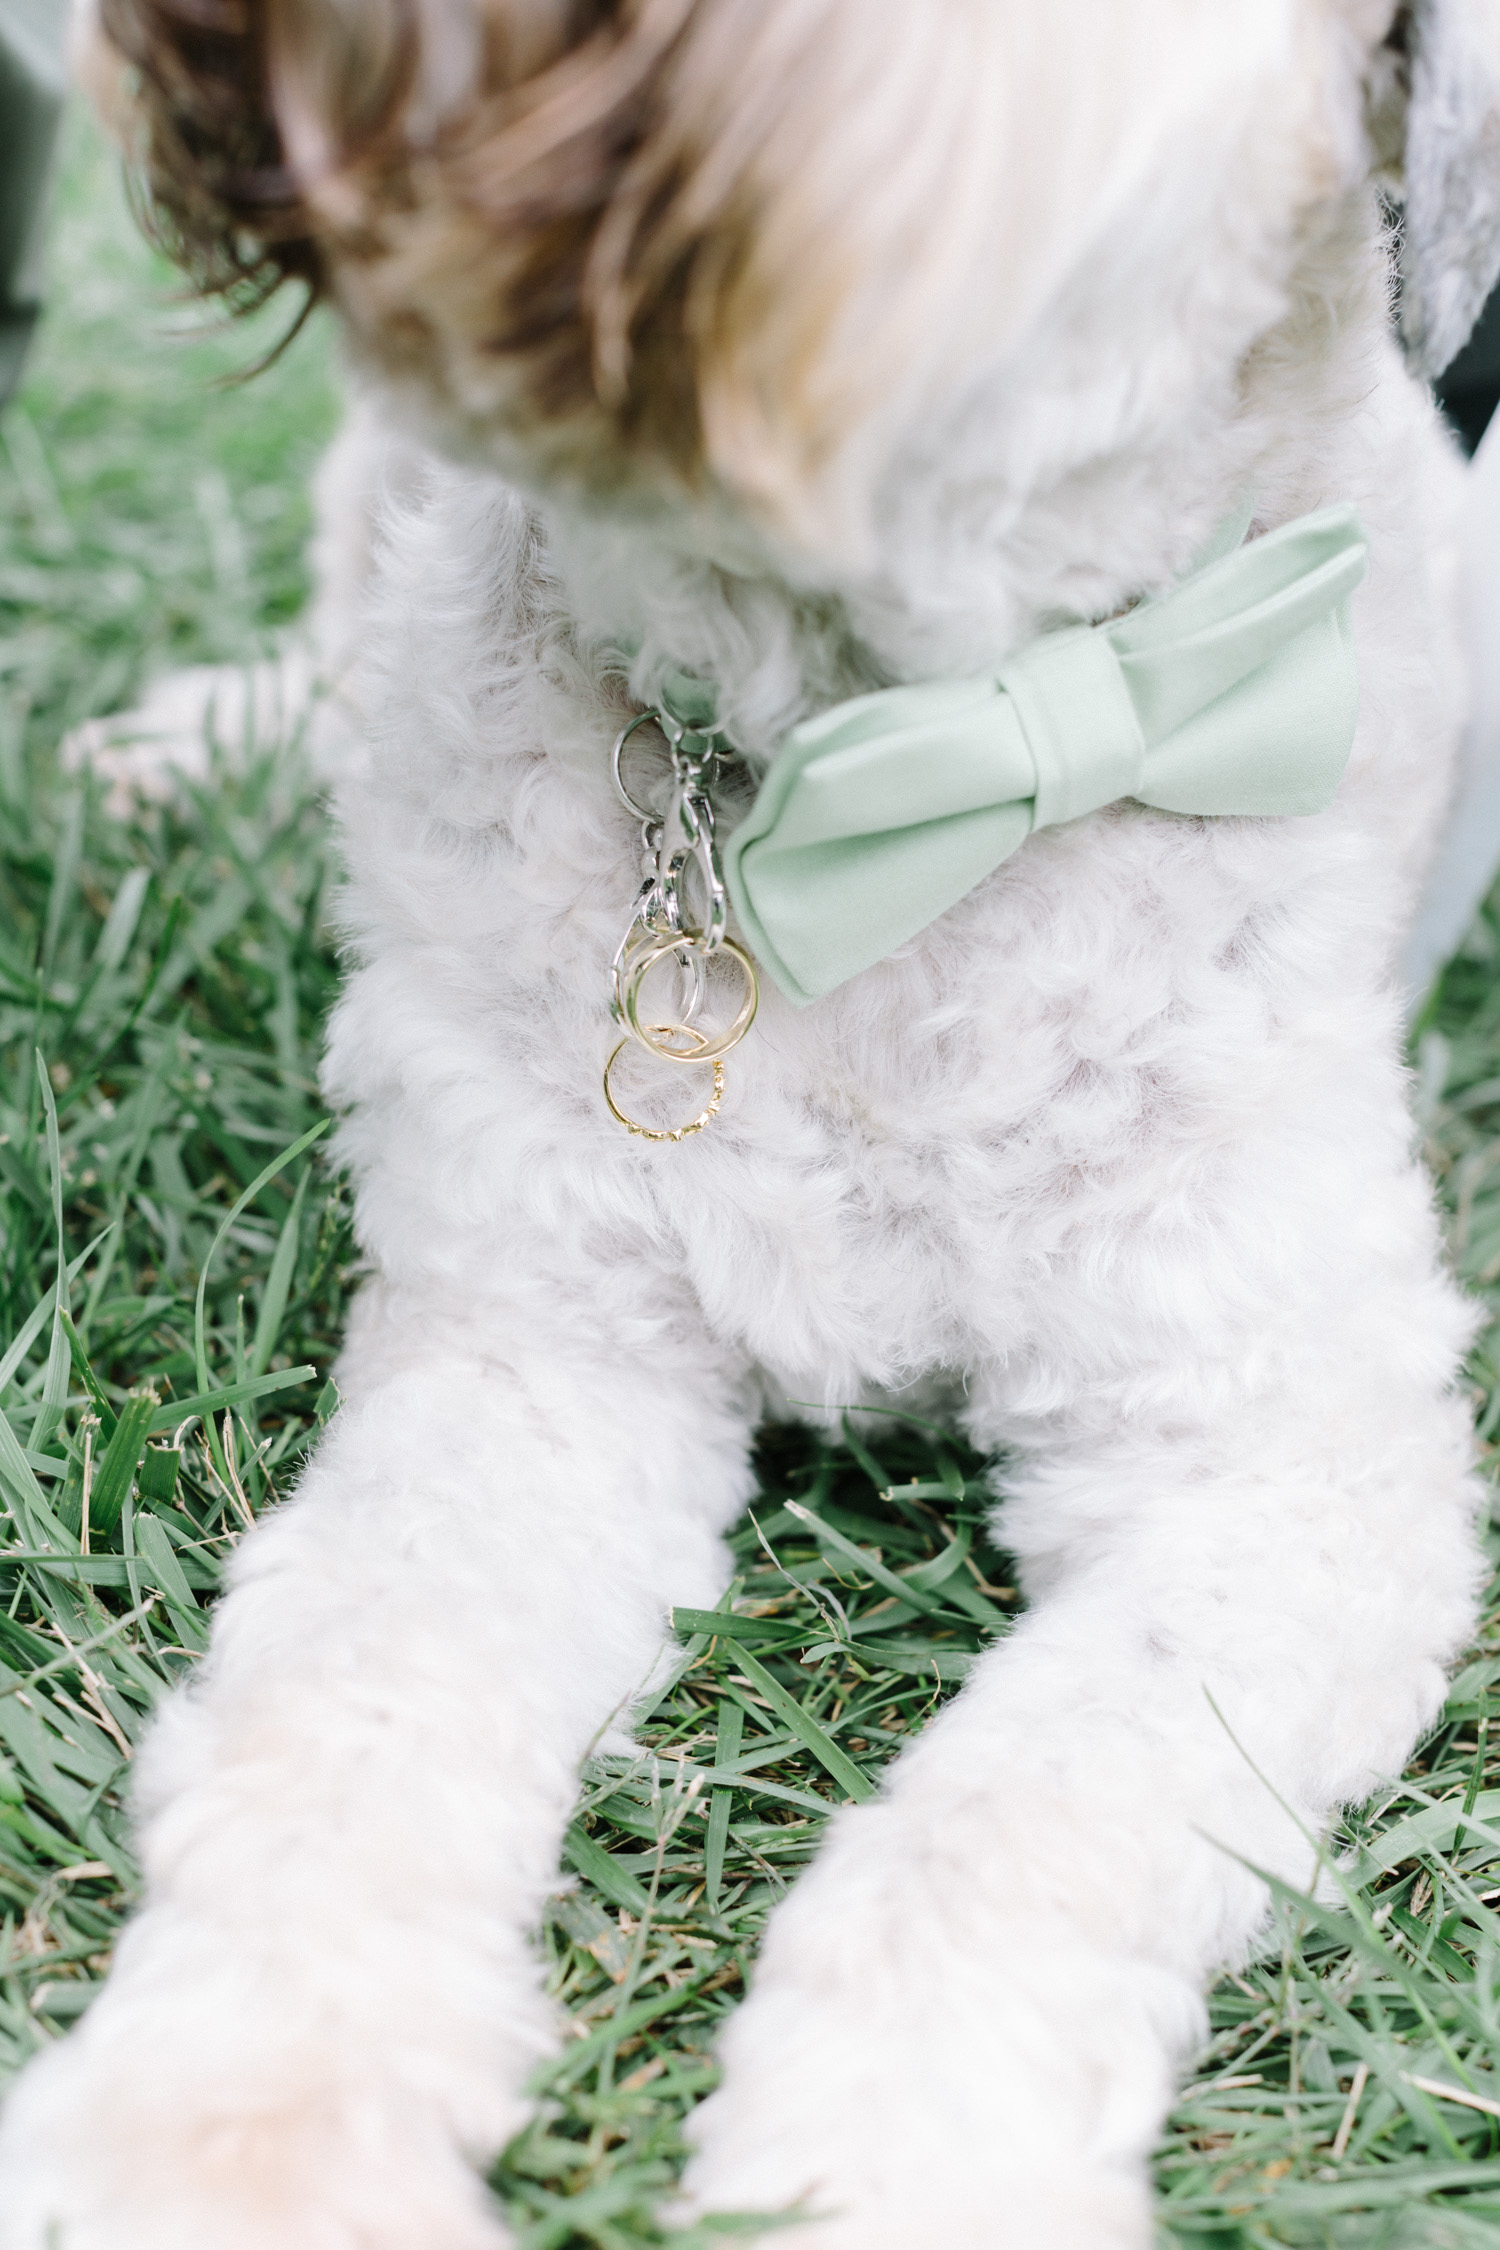 A ring bearer wedding dog has gold rings clipped to his mint green bowtie collar